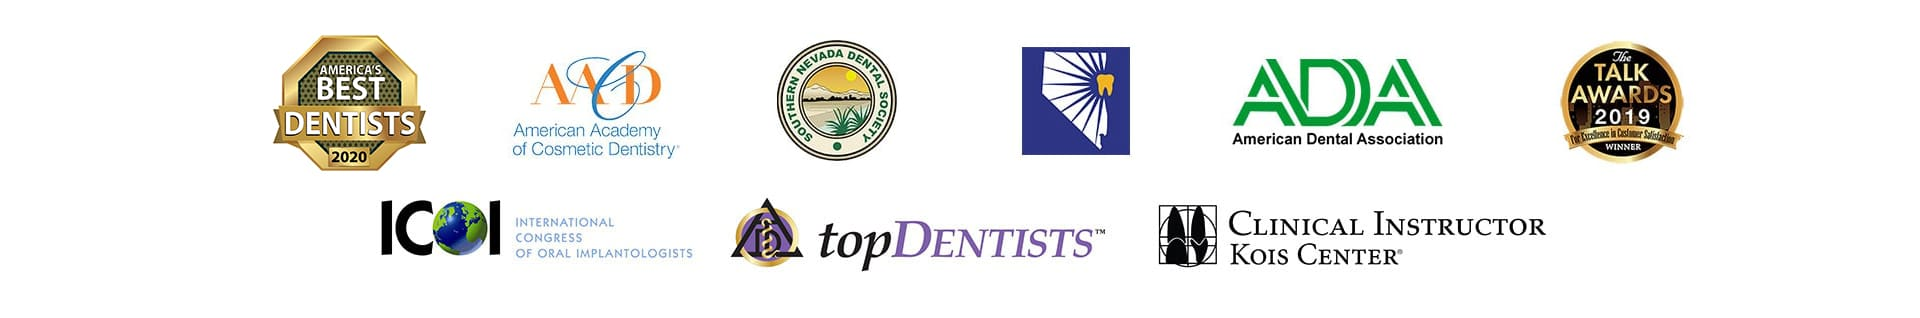 The proud dental affiliations of James B Polley, DDS - Summerlin Dentist